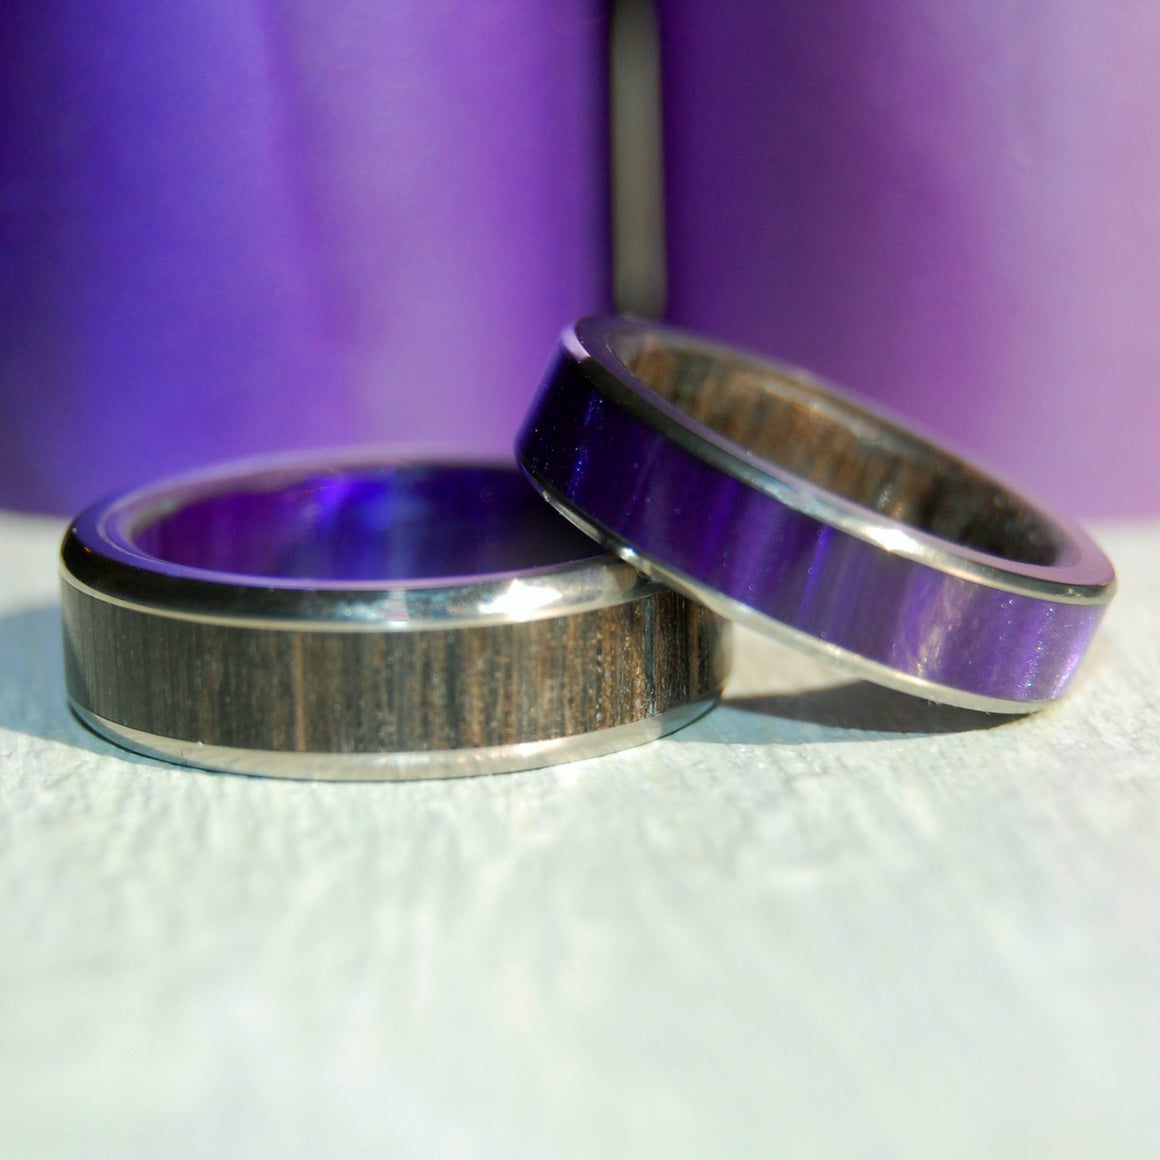 BORUTA & BEREGINIA | Ancient Bog Oak Wood & Purple Marbled Resin - Wooden & Titanium Wedding Rings - Minter and Richter Designs